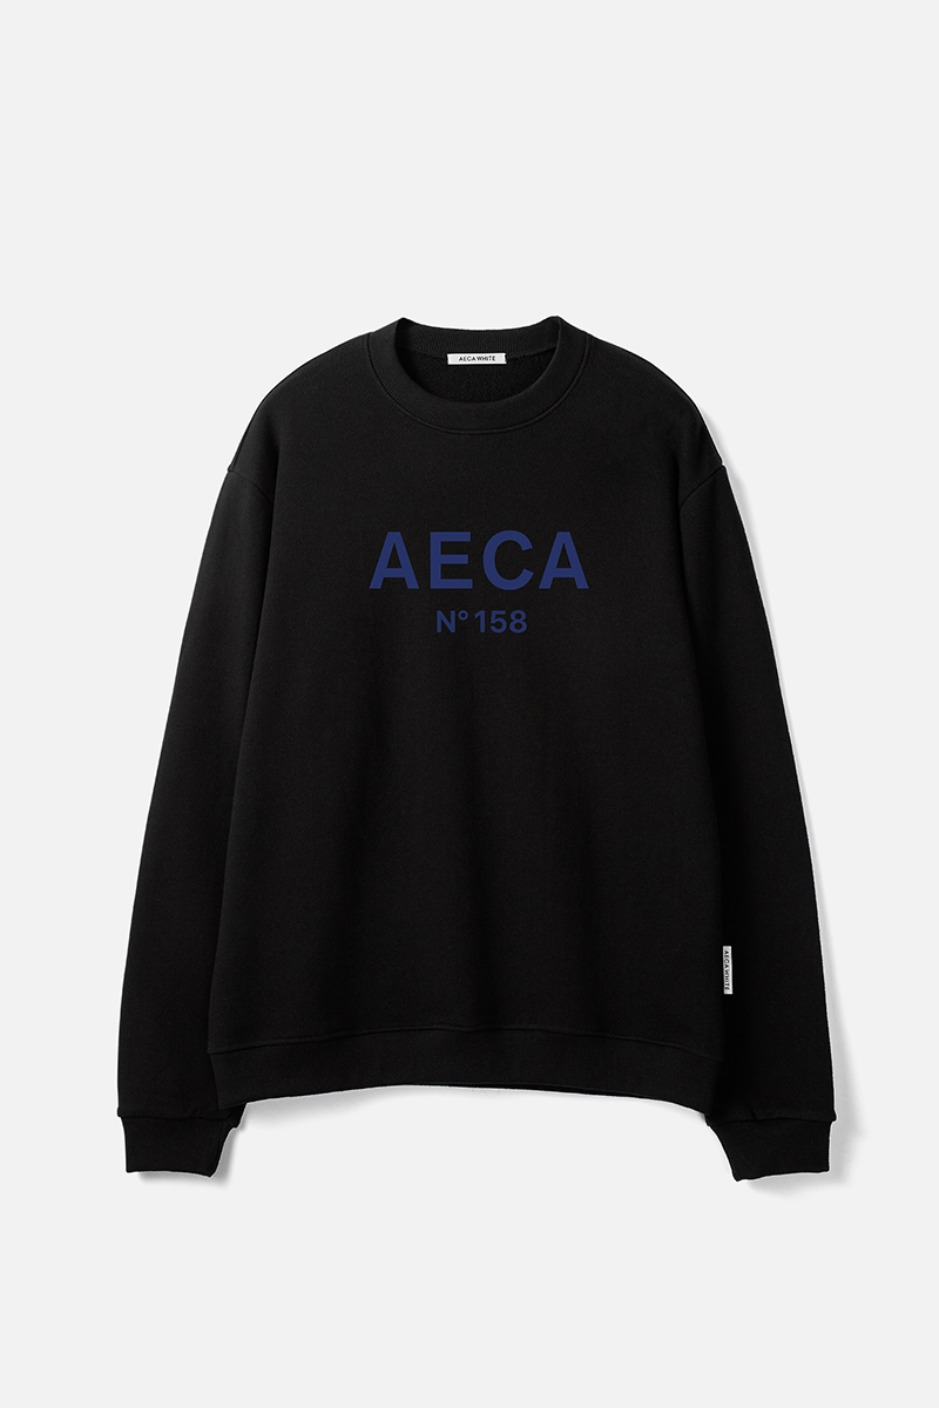 AECA BIG LOGO SWEATSHIRT-BLACK